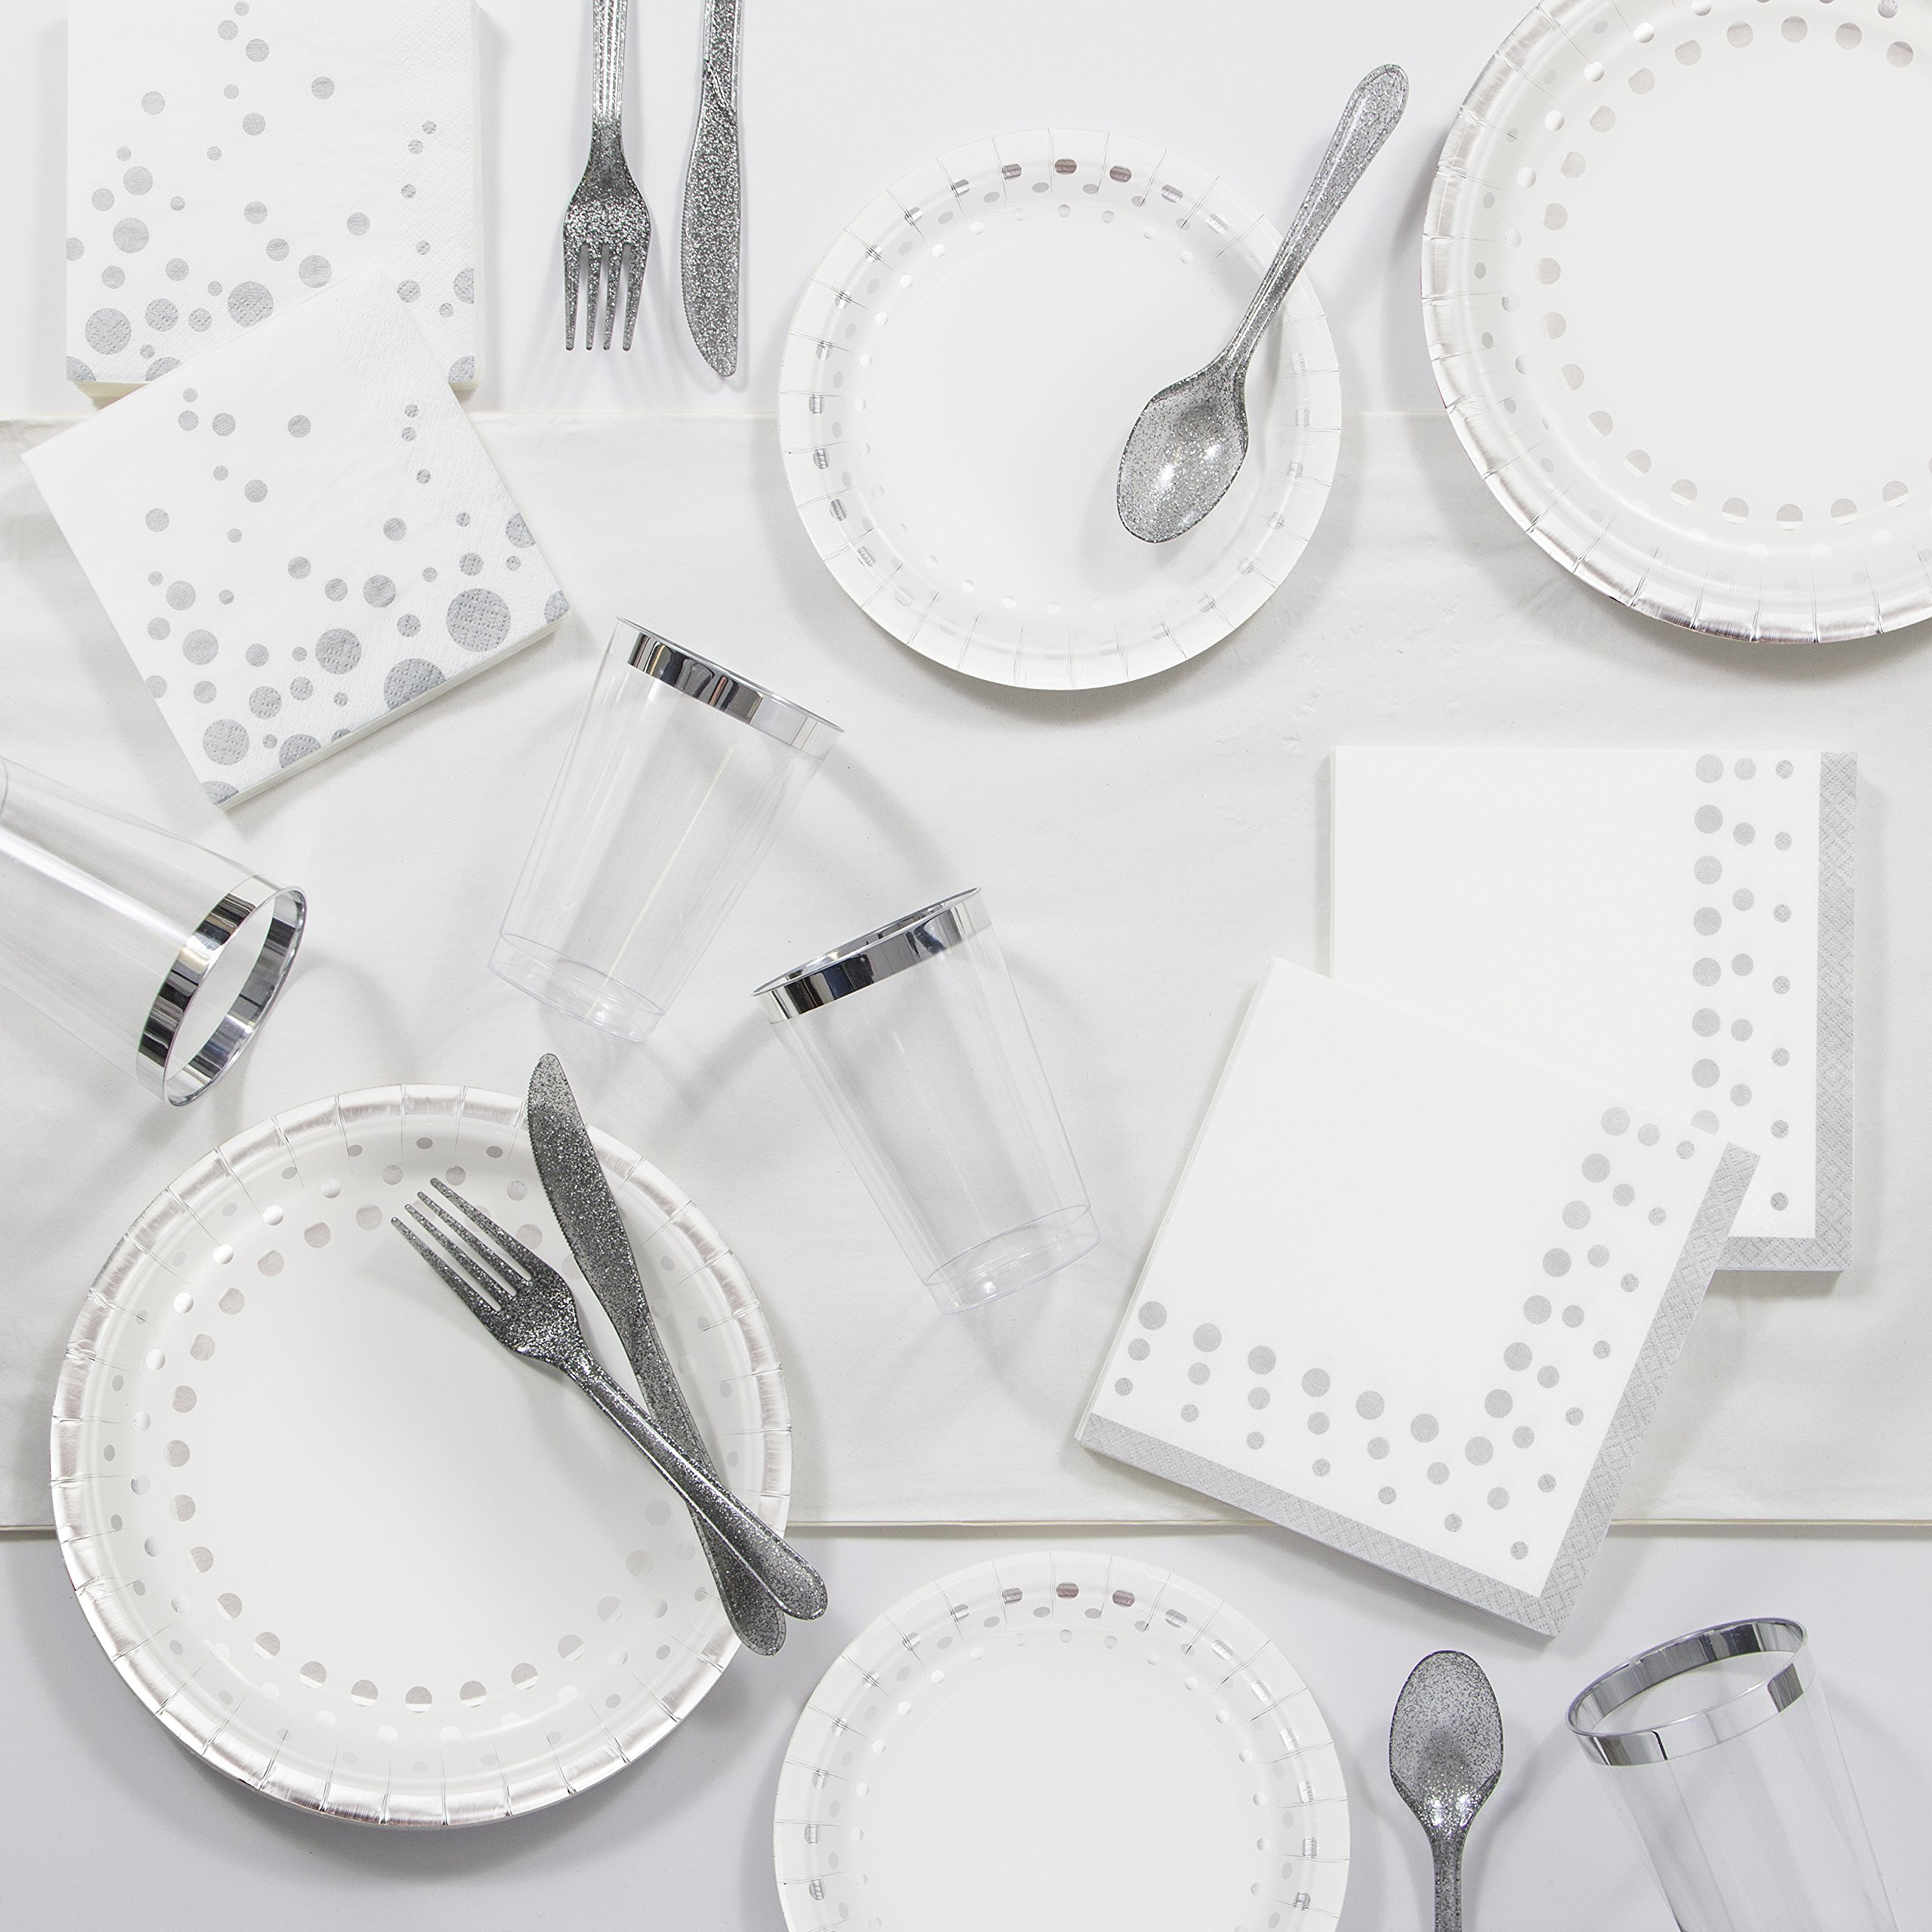 Large Sparkle and Shine Silver Party Supplies Kit